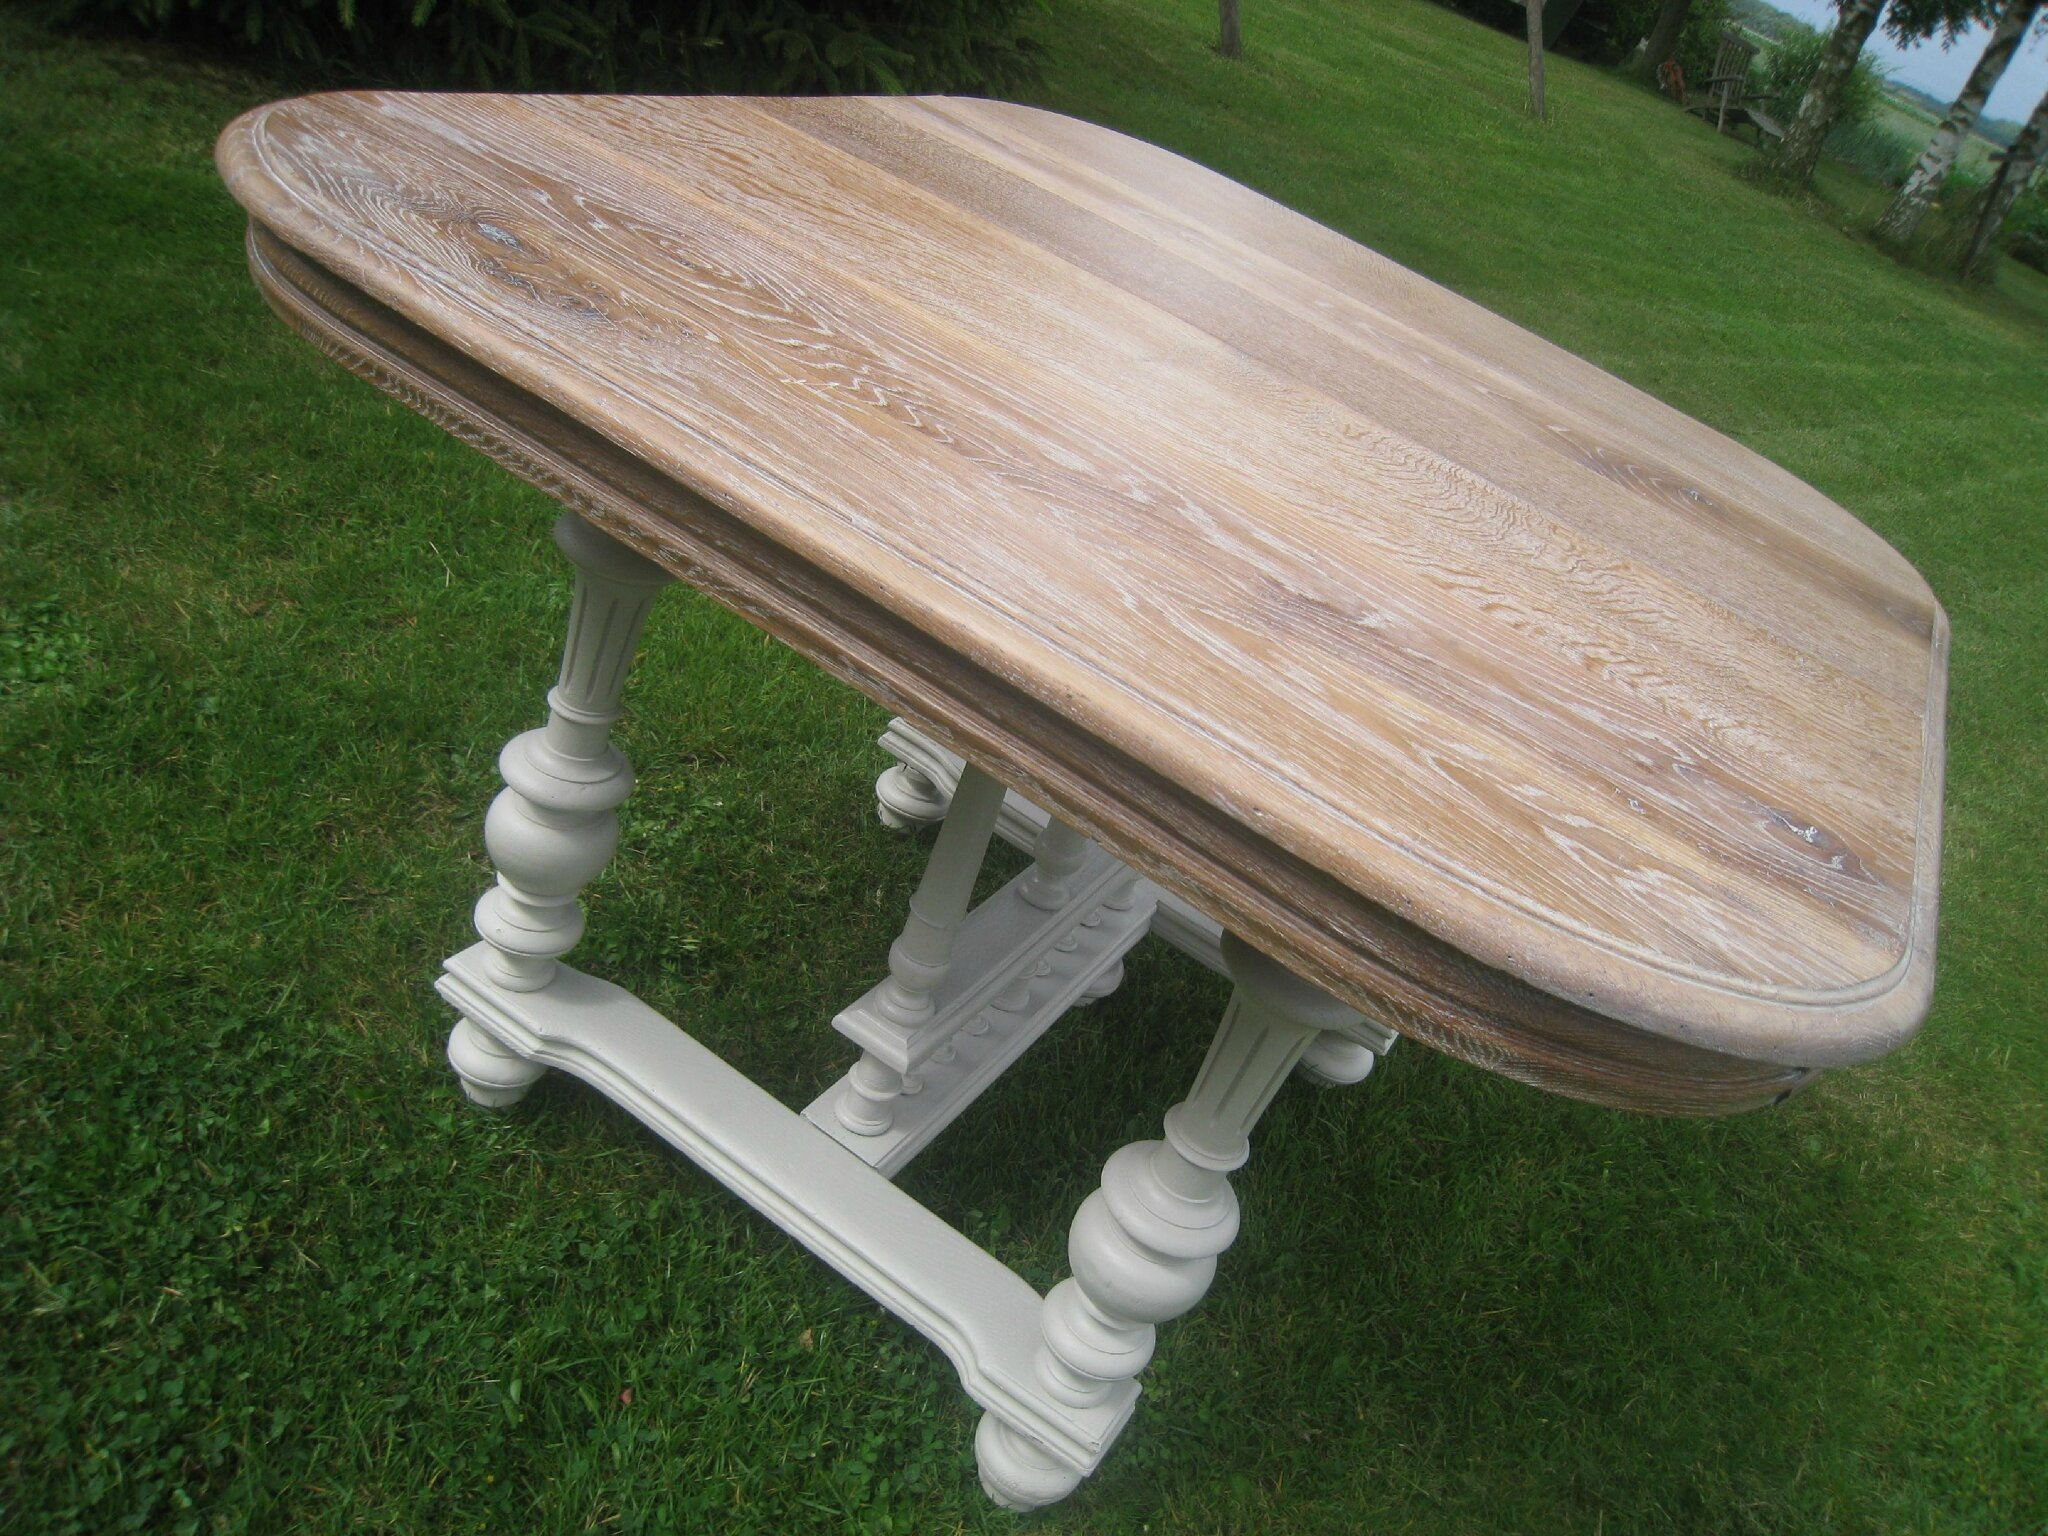 Les tables henri ii revisit es patines couleurs - Relooker table en bois ...